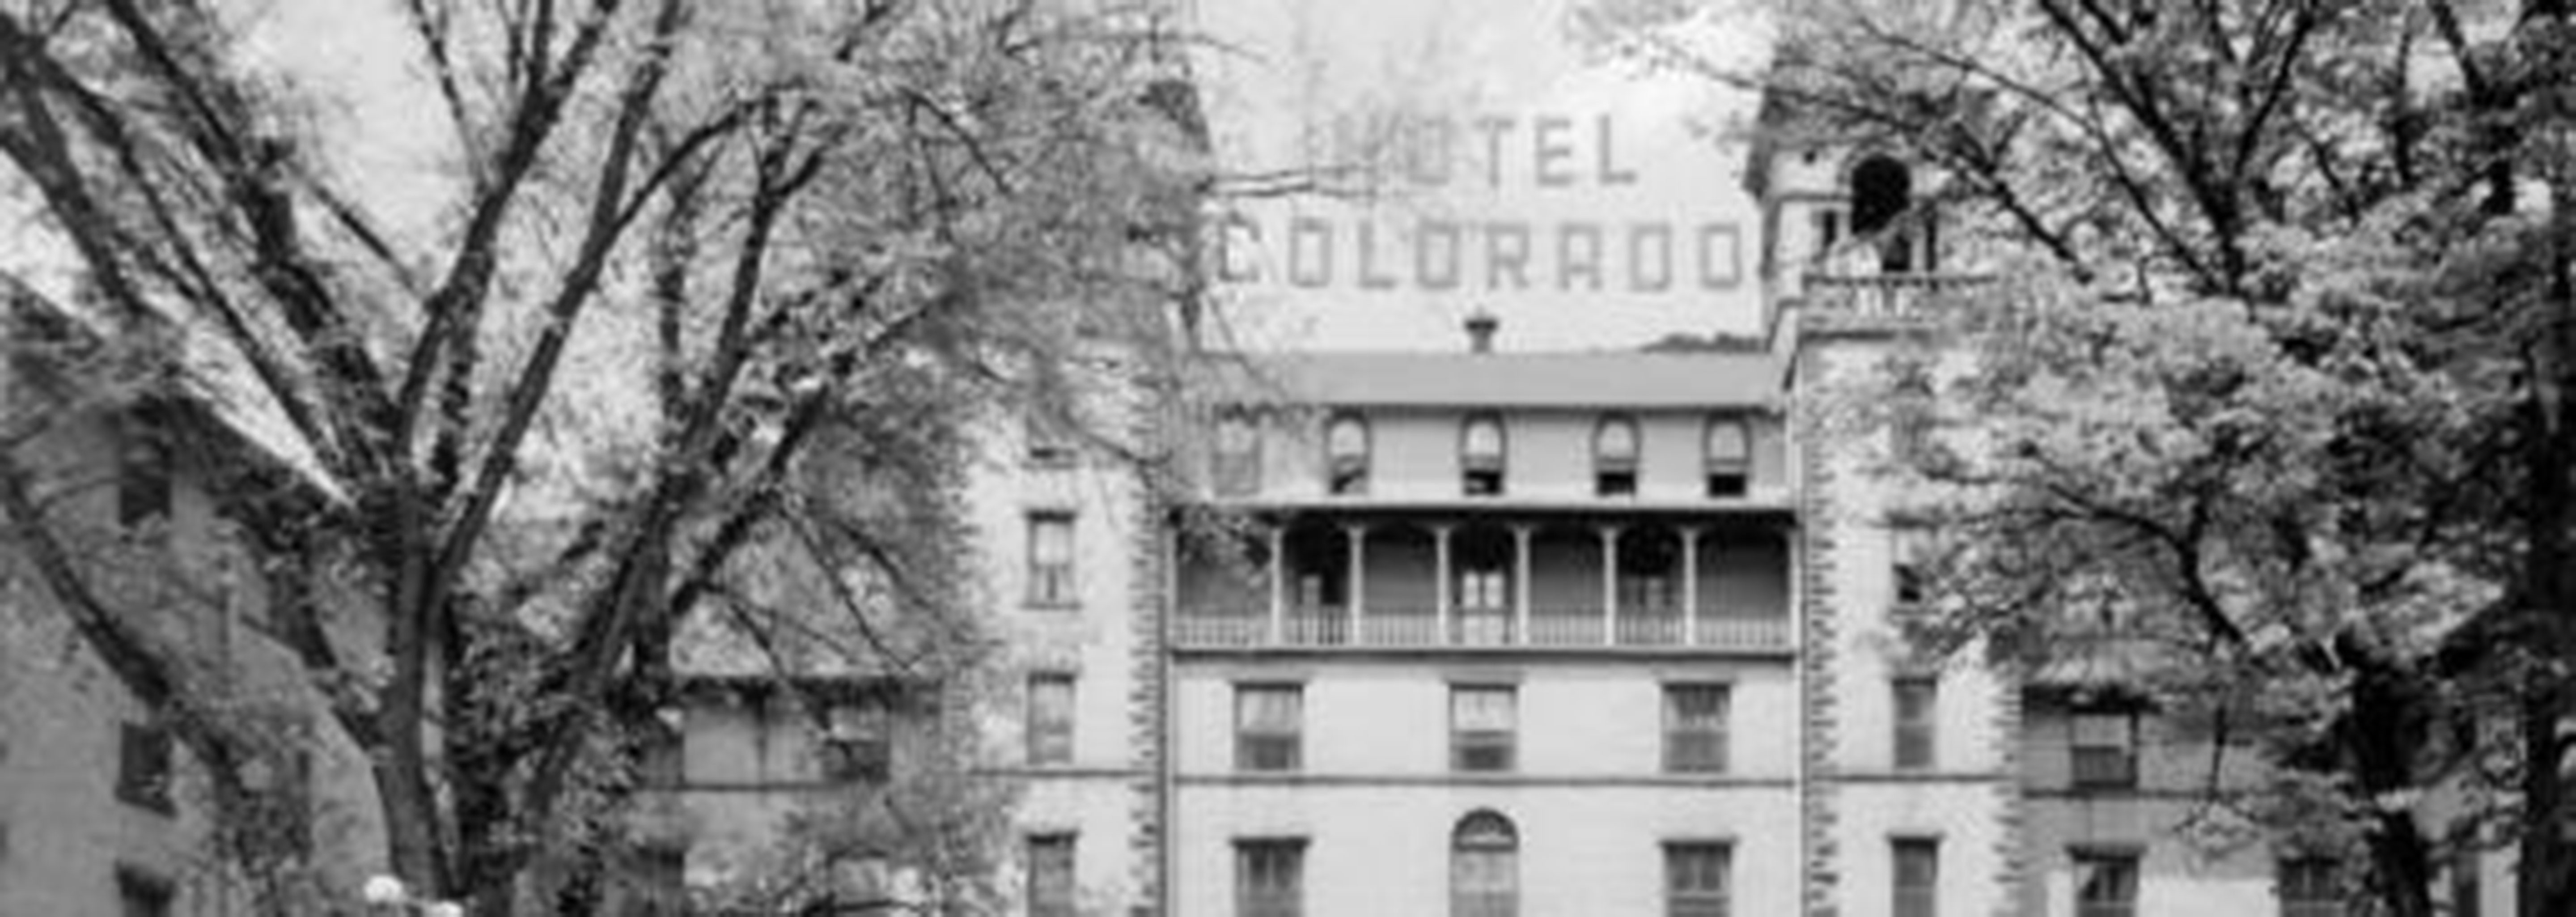 Historic image of hotel exterior at the Hotel Colorado, 1893, Member of Historic Hotels of America, Glenwood Springs, Colorado, Discover